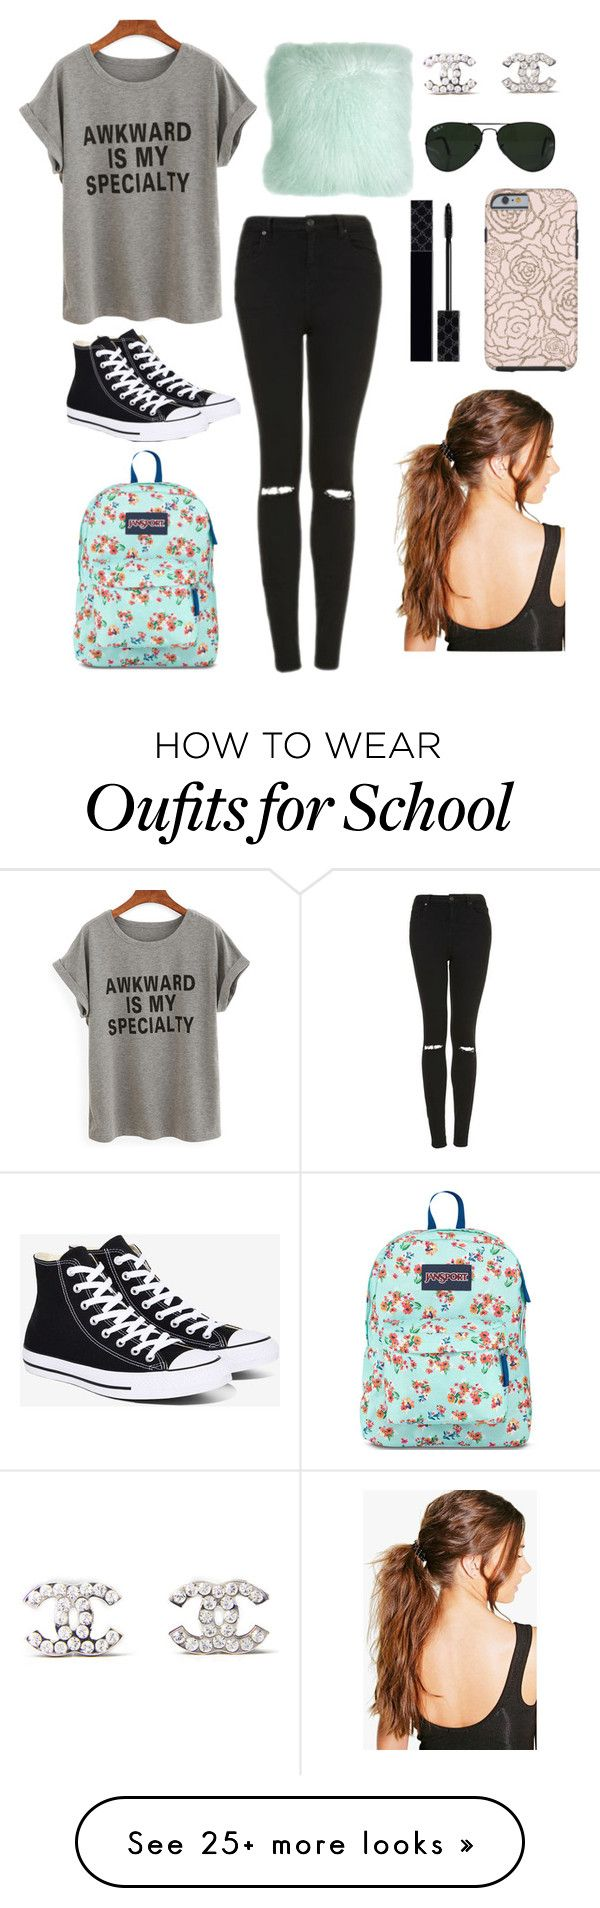 """""""In school....last day"""" by stinkerbelle2000 on Polyvore featuring Topshop, Converse, JanSport, Pillow Decor, Chanel, Ray-Ban, Gucci and Boohoo"""